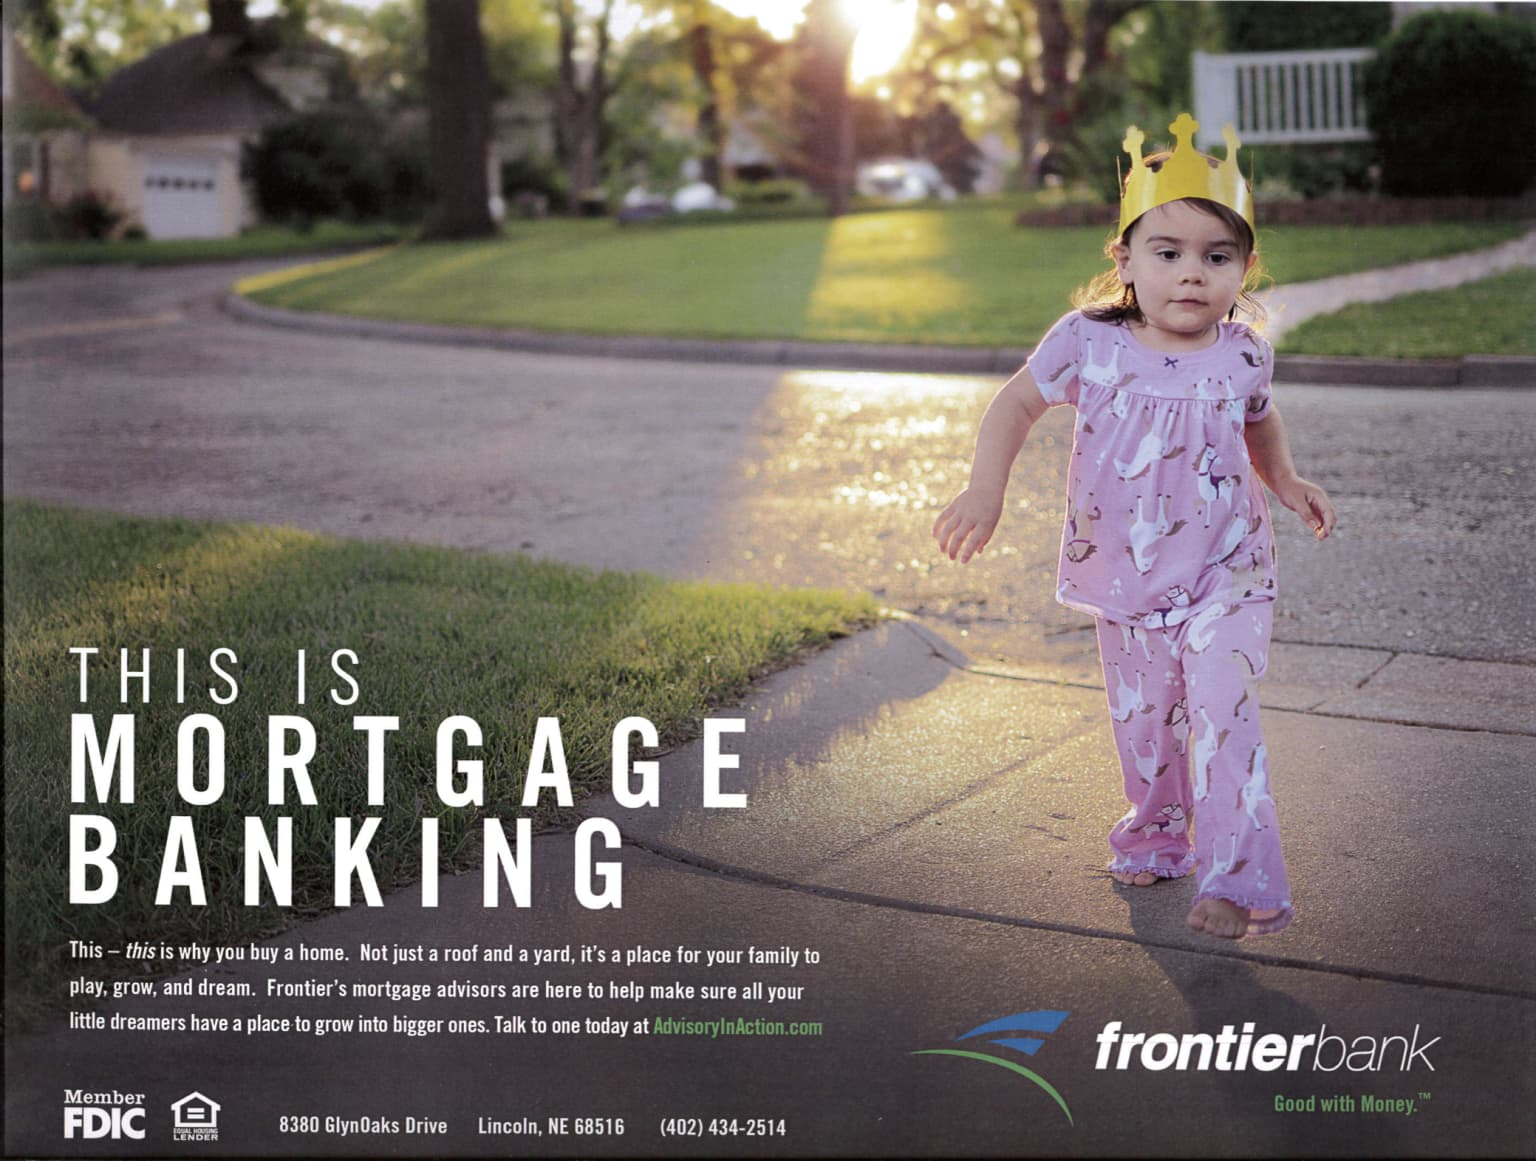 Frontier Bank. Small bank with big dreams.